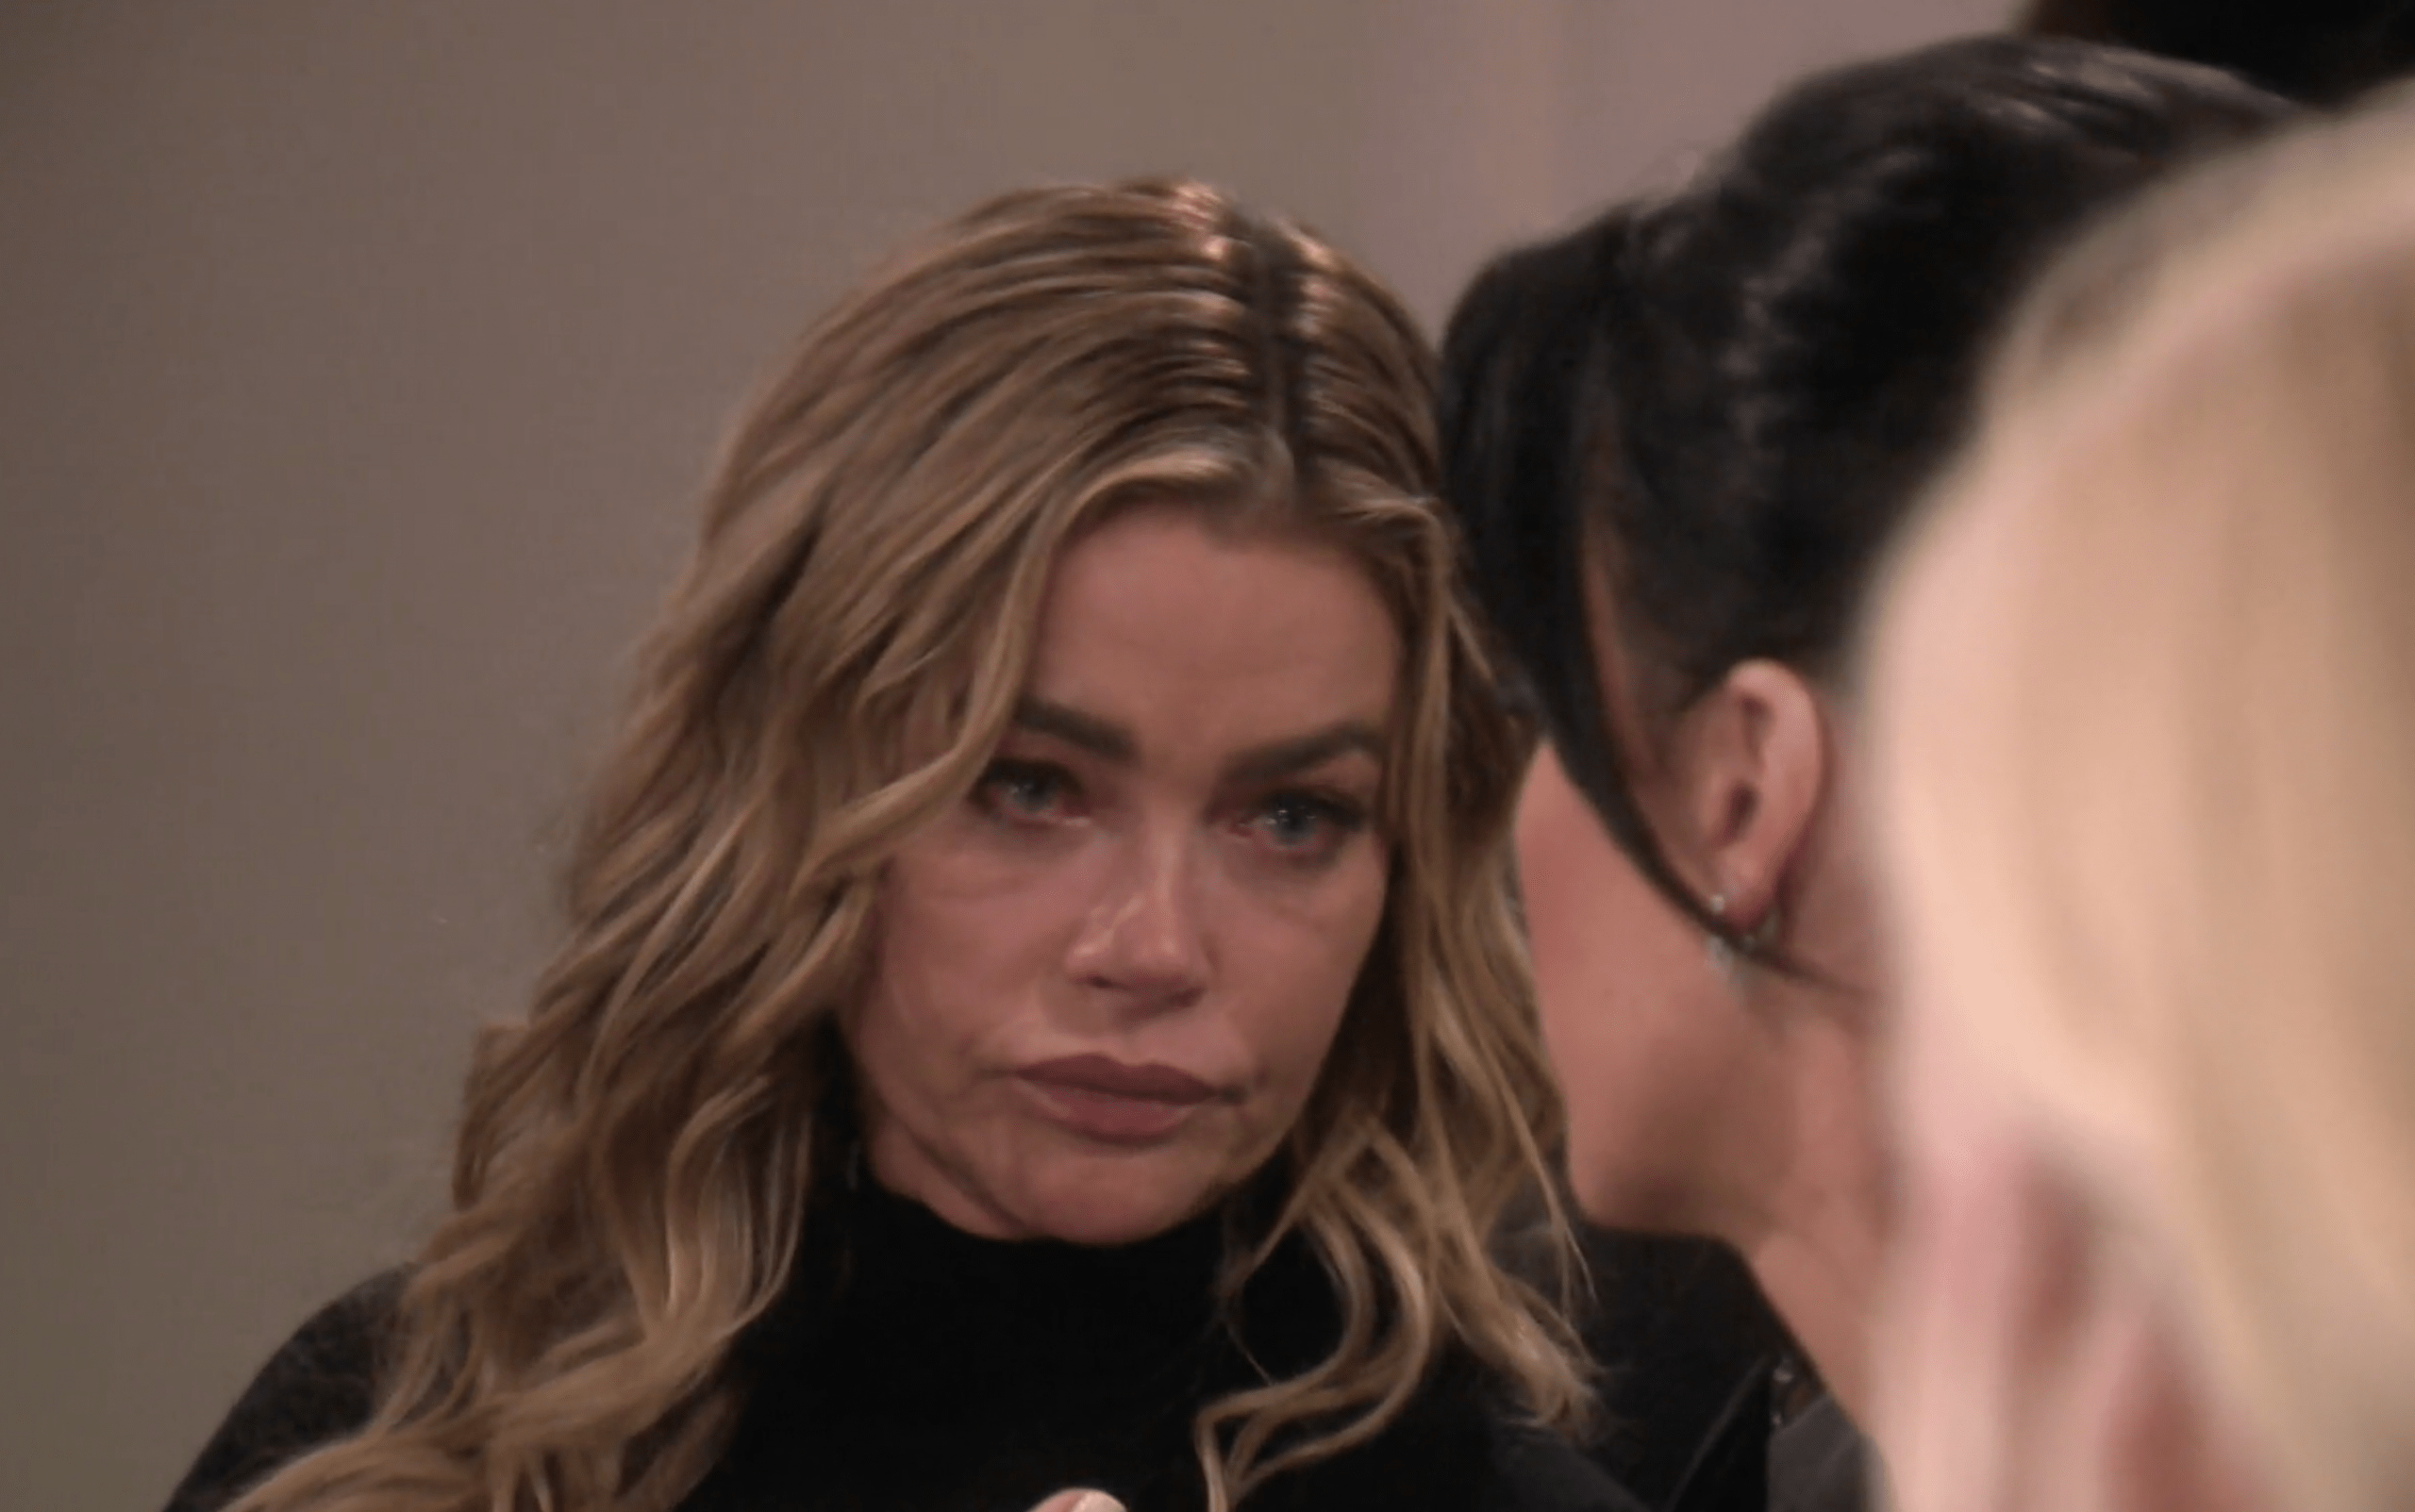 Denise Richards, The Real Housewives of Beverly Hills ratings, RHOBH ratings, Bravo ratings, Bravo TV